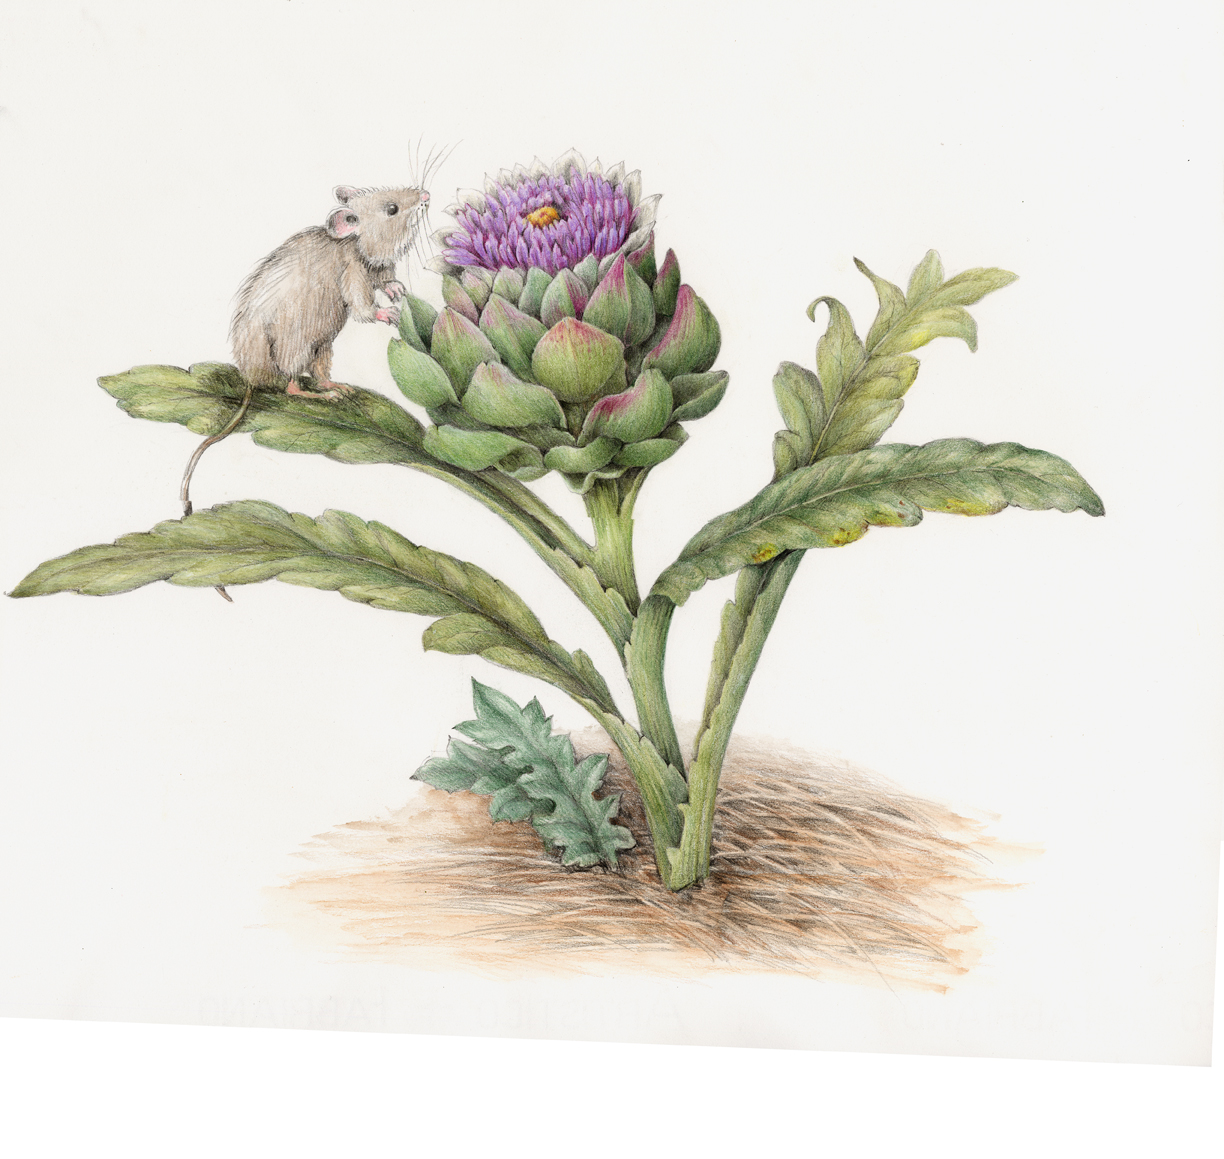 The mouse admirers an artichoke flower